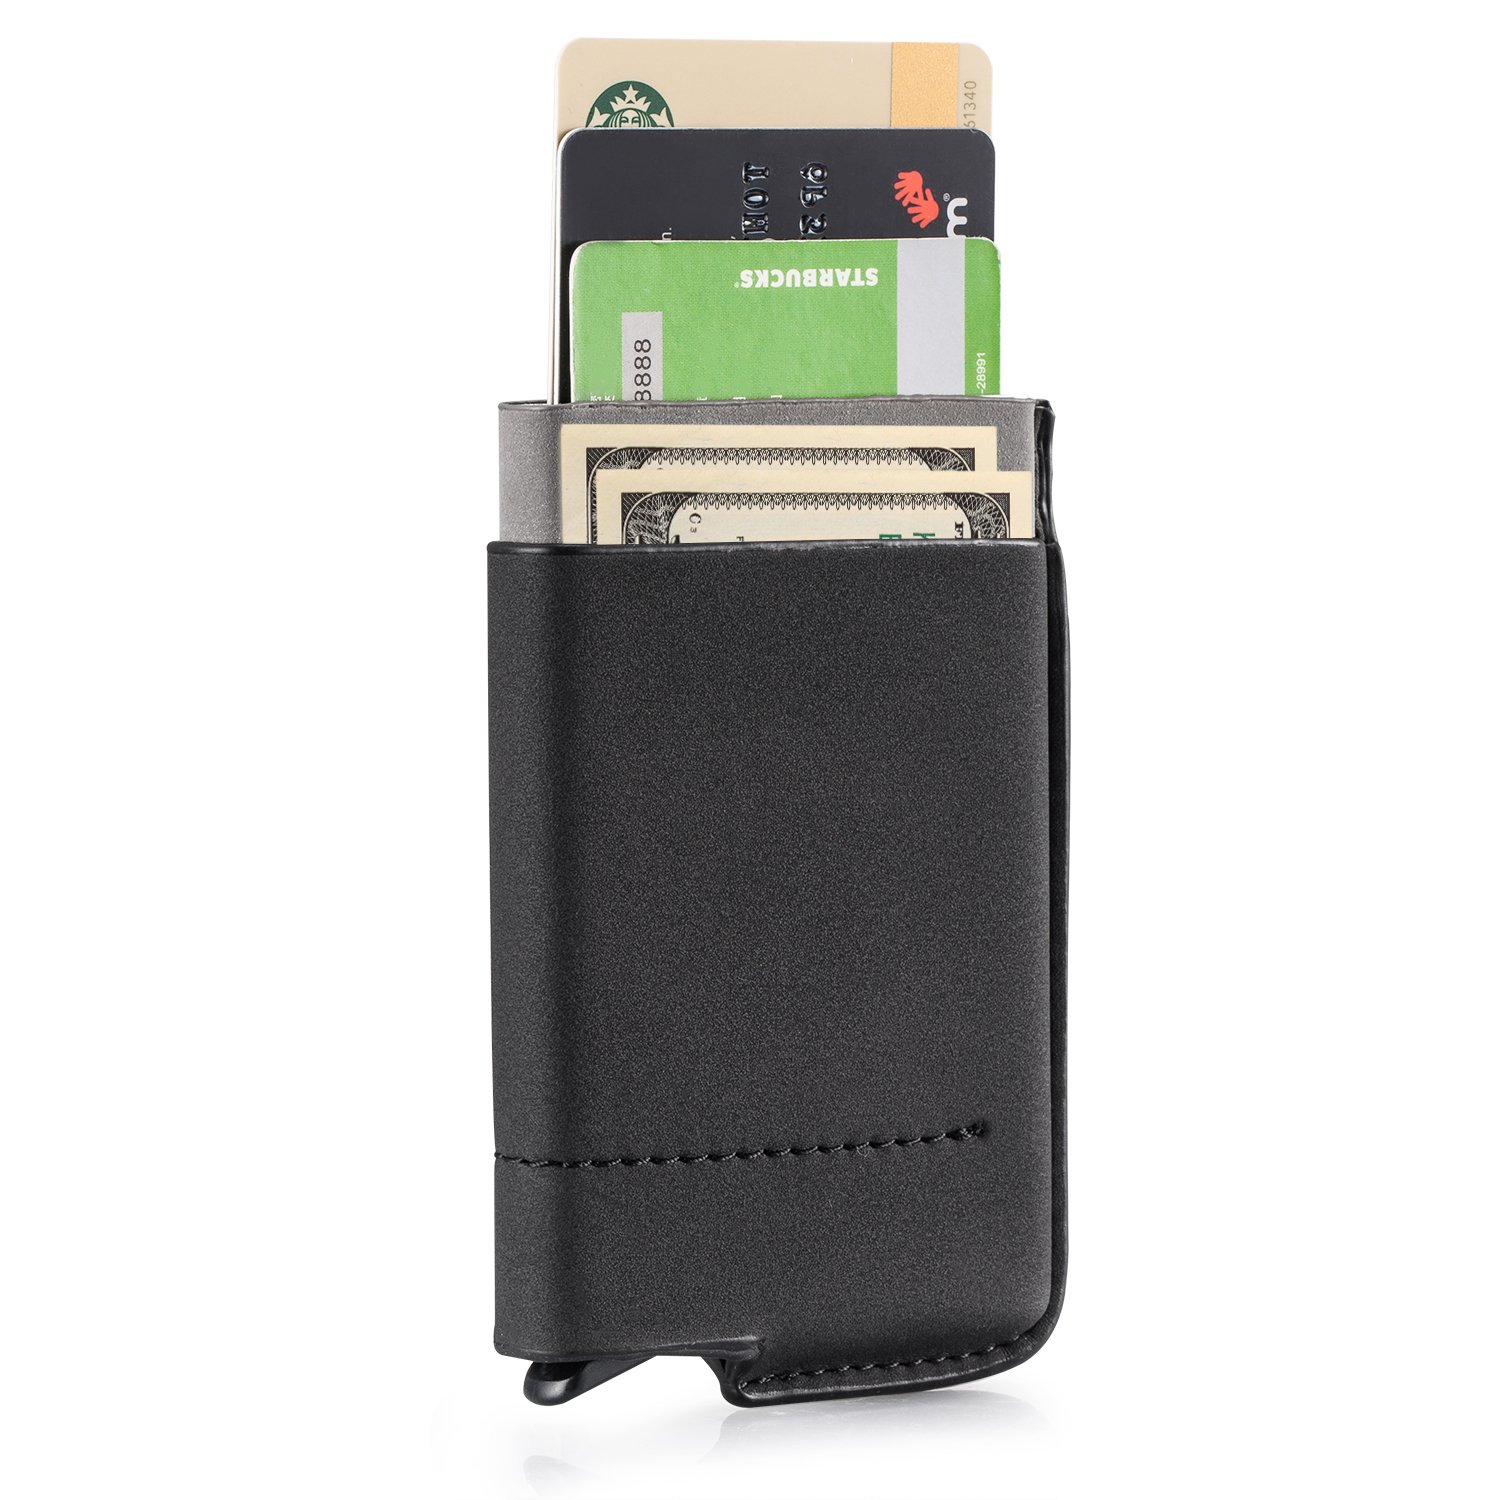 RFID Blocking Wallet Pop-out Card Holder (6) Slim Design with Side Pockets